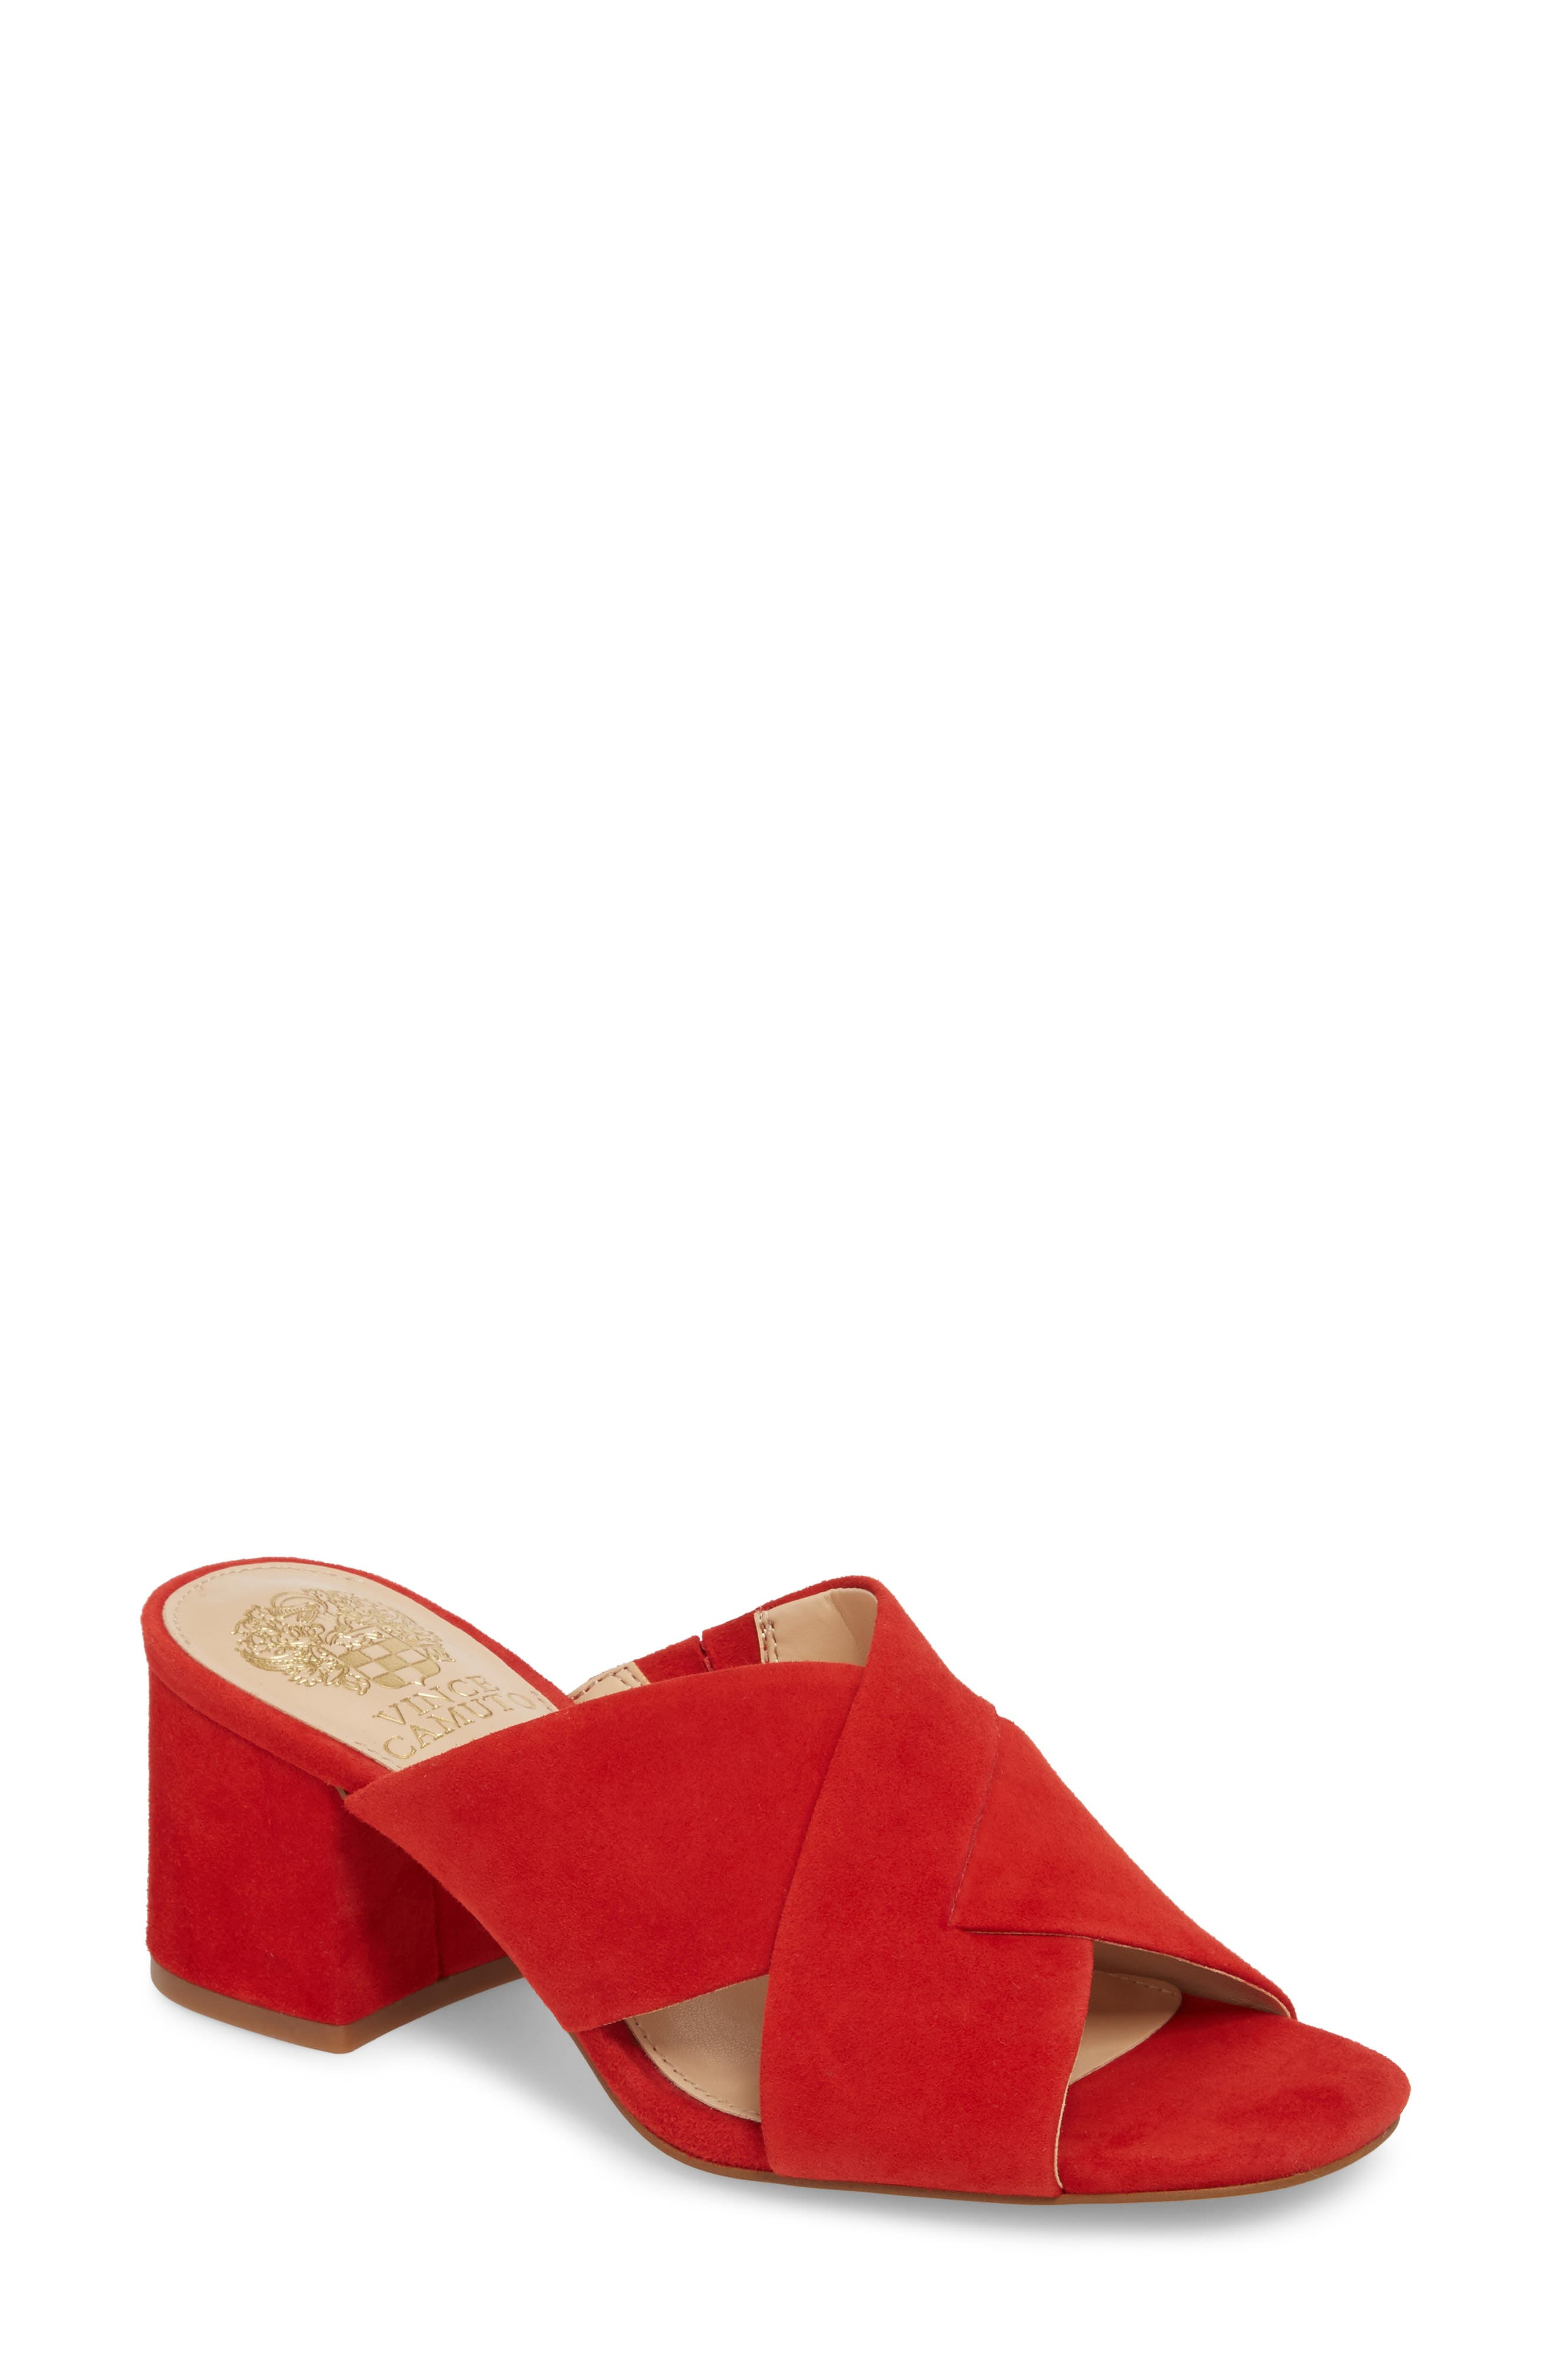 Stania Sandal,                             Main thumbnail 1, color,                             RED HOT RIO SUEDE